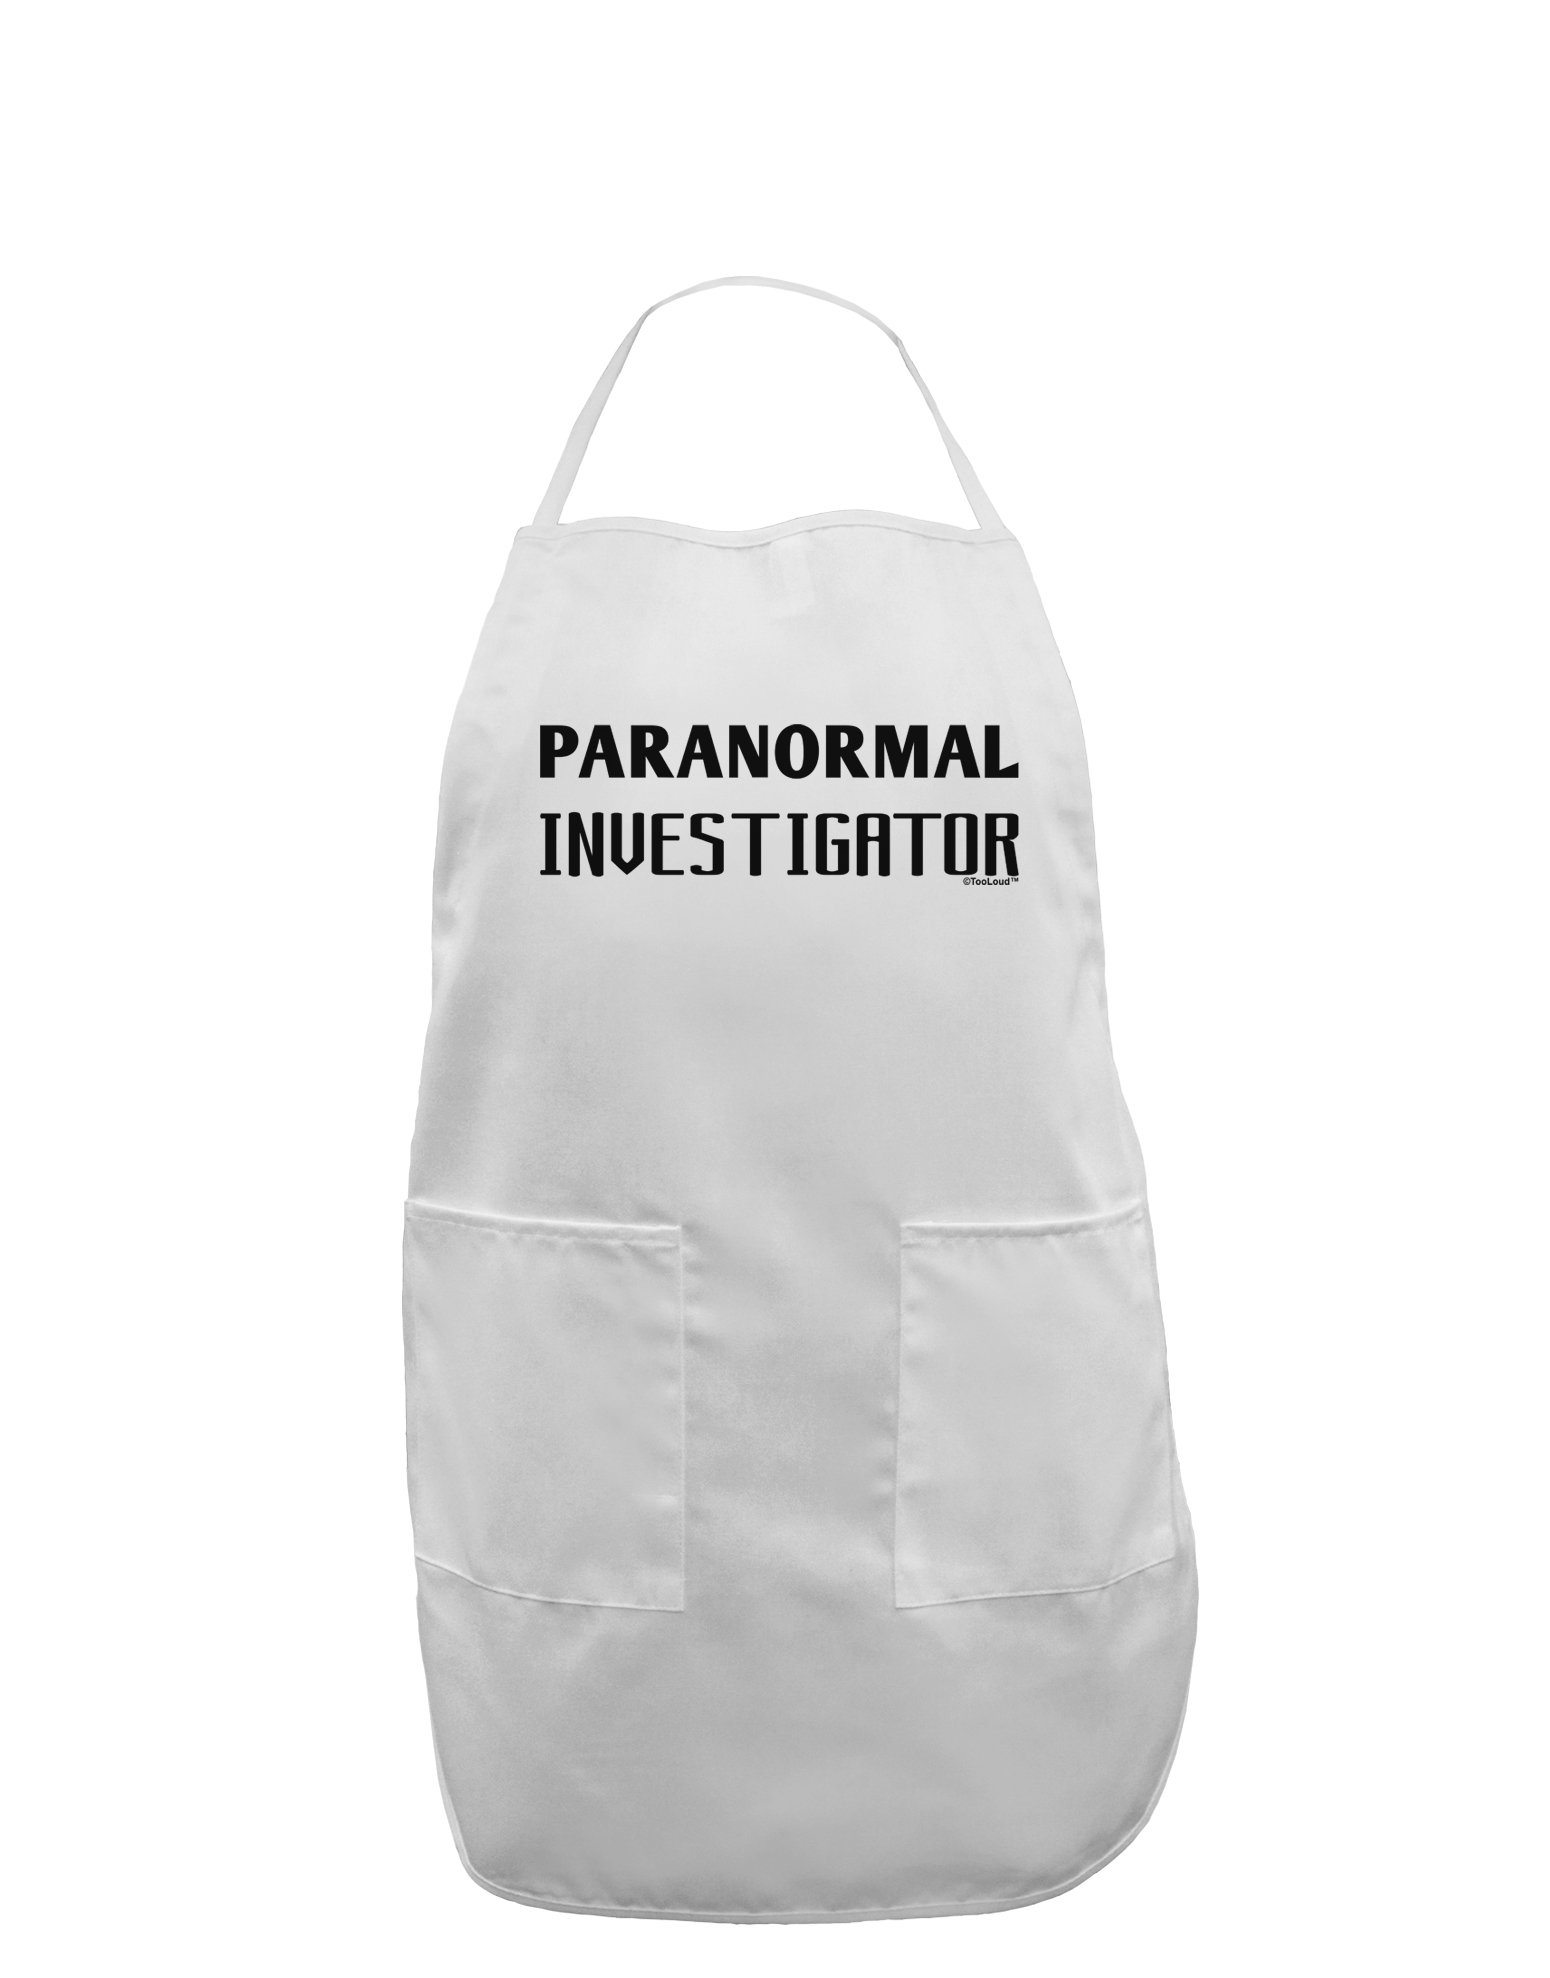 TooLoud Paranormal Investigator Adult Apron - White - One-Size